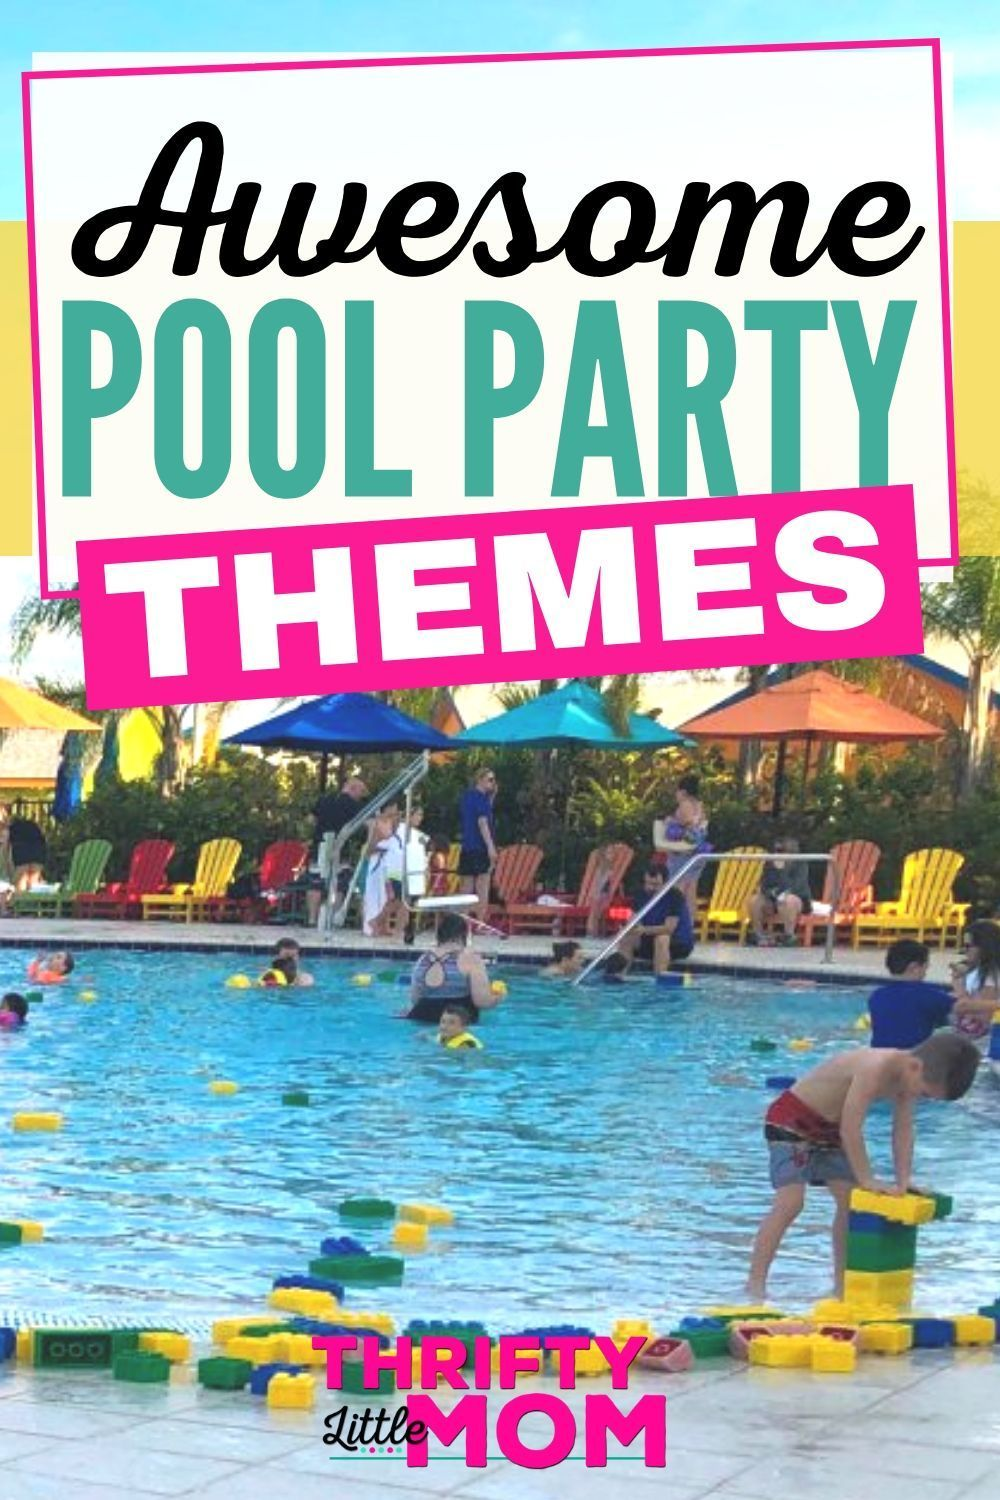 26 Fabulously Fun Pool Party Themes for Summer  Pool party themes